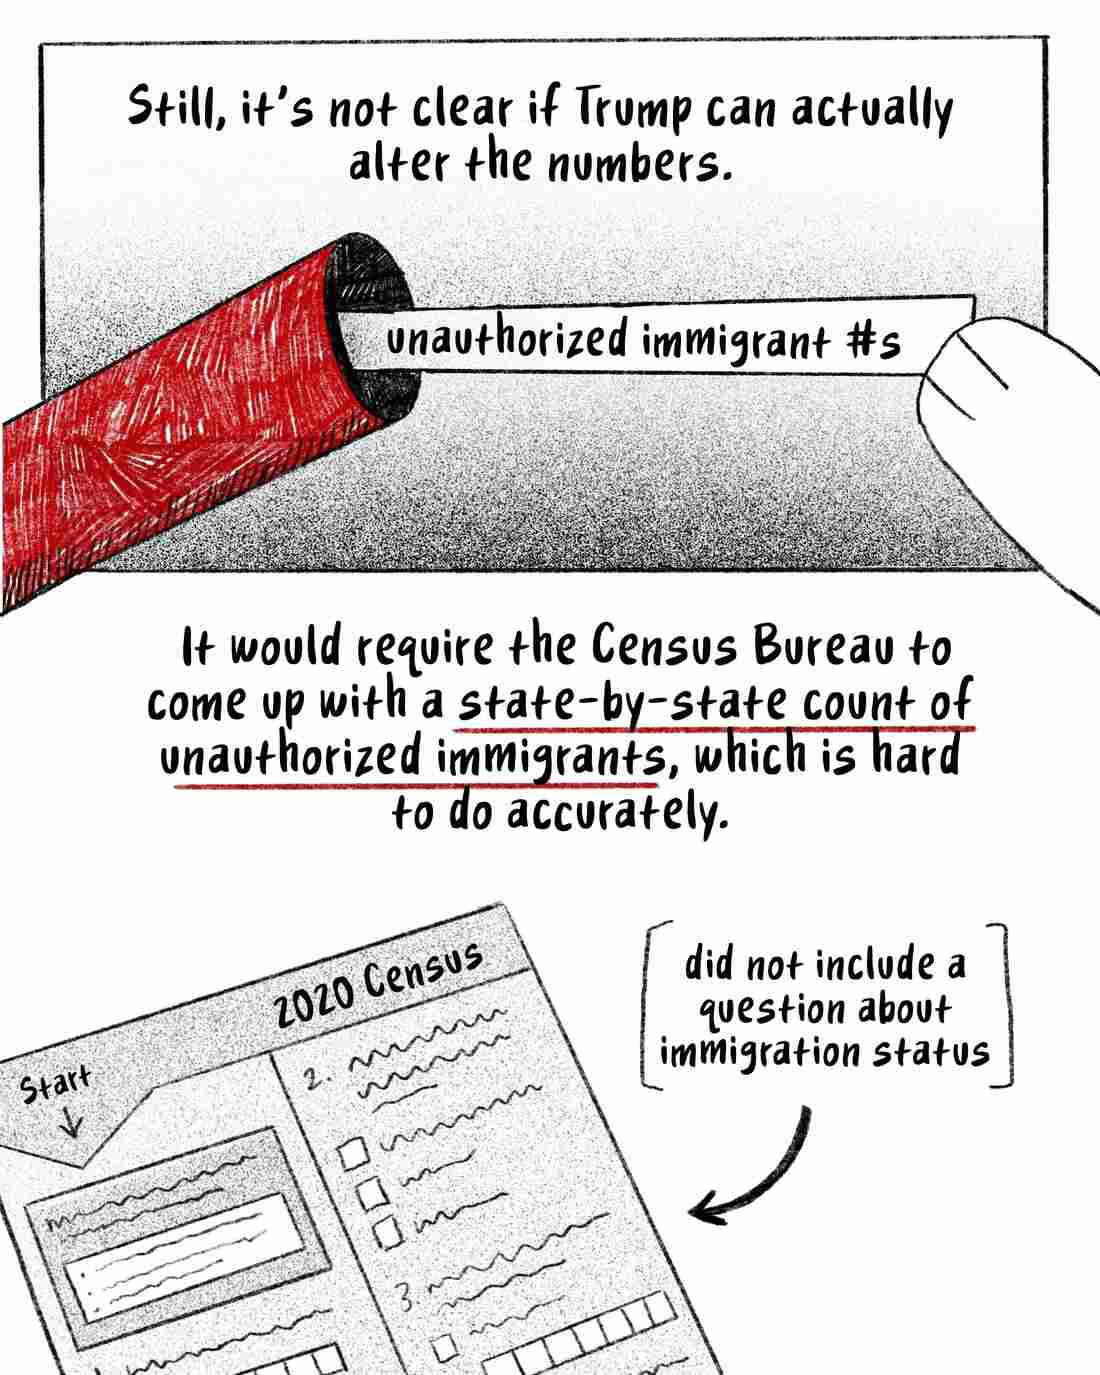 It's not clear if Trump is able to alter the numbers. The Census Bureau would need to come up with a state-by-state count of unauthorized immigrants, which is hard to do accurately. [Image description- a 2020 census form, with no question about immigration status]